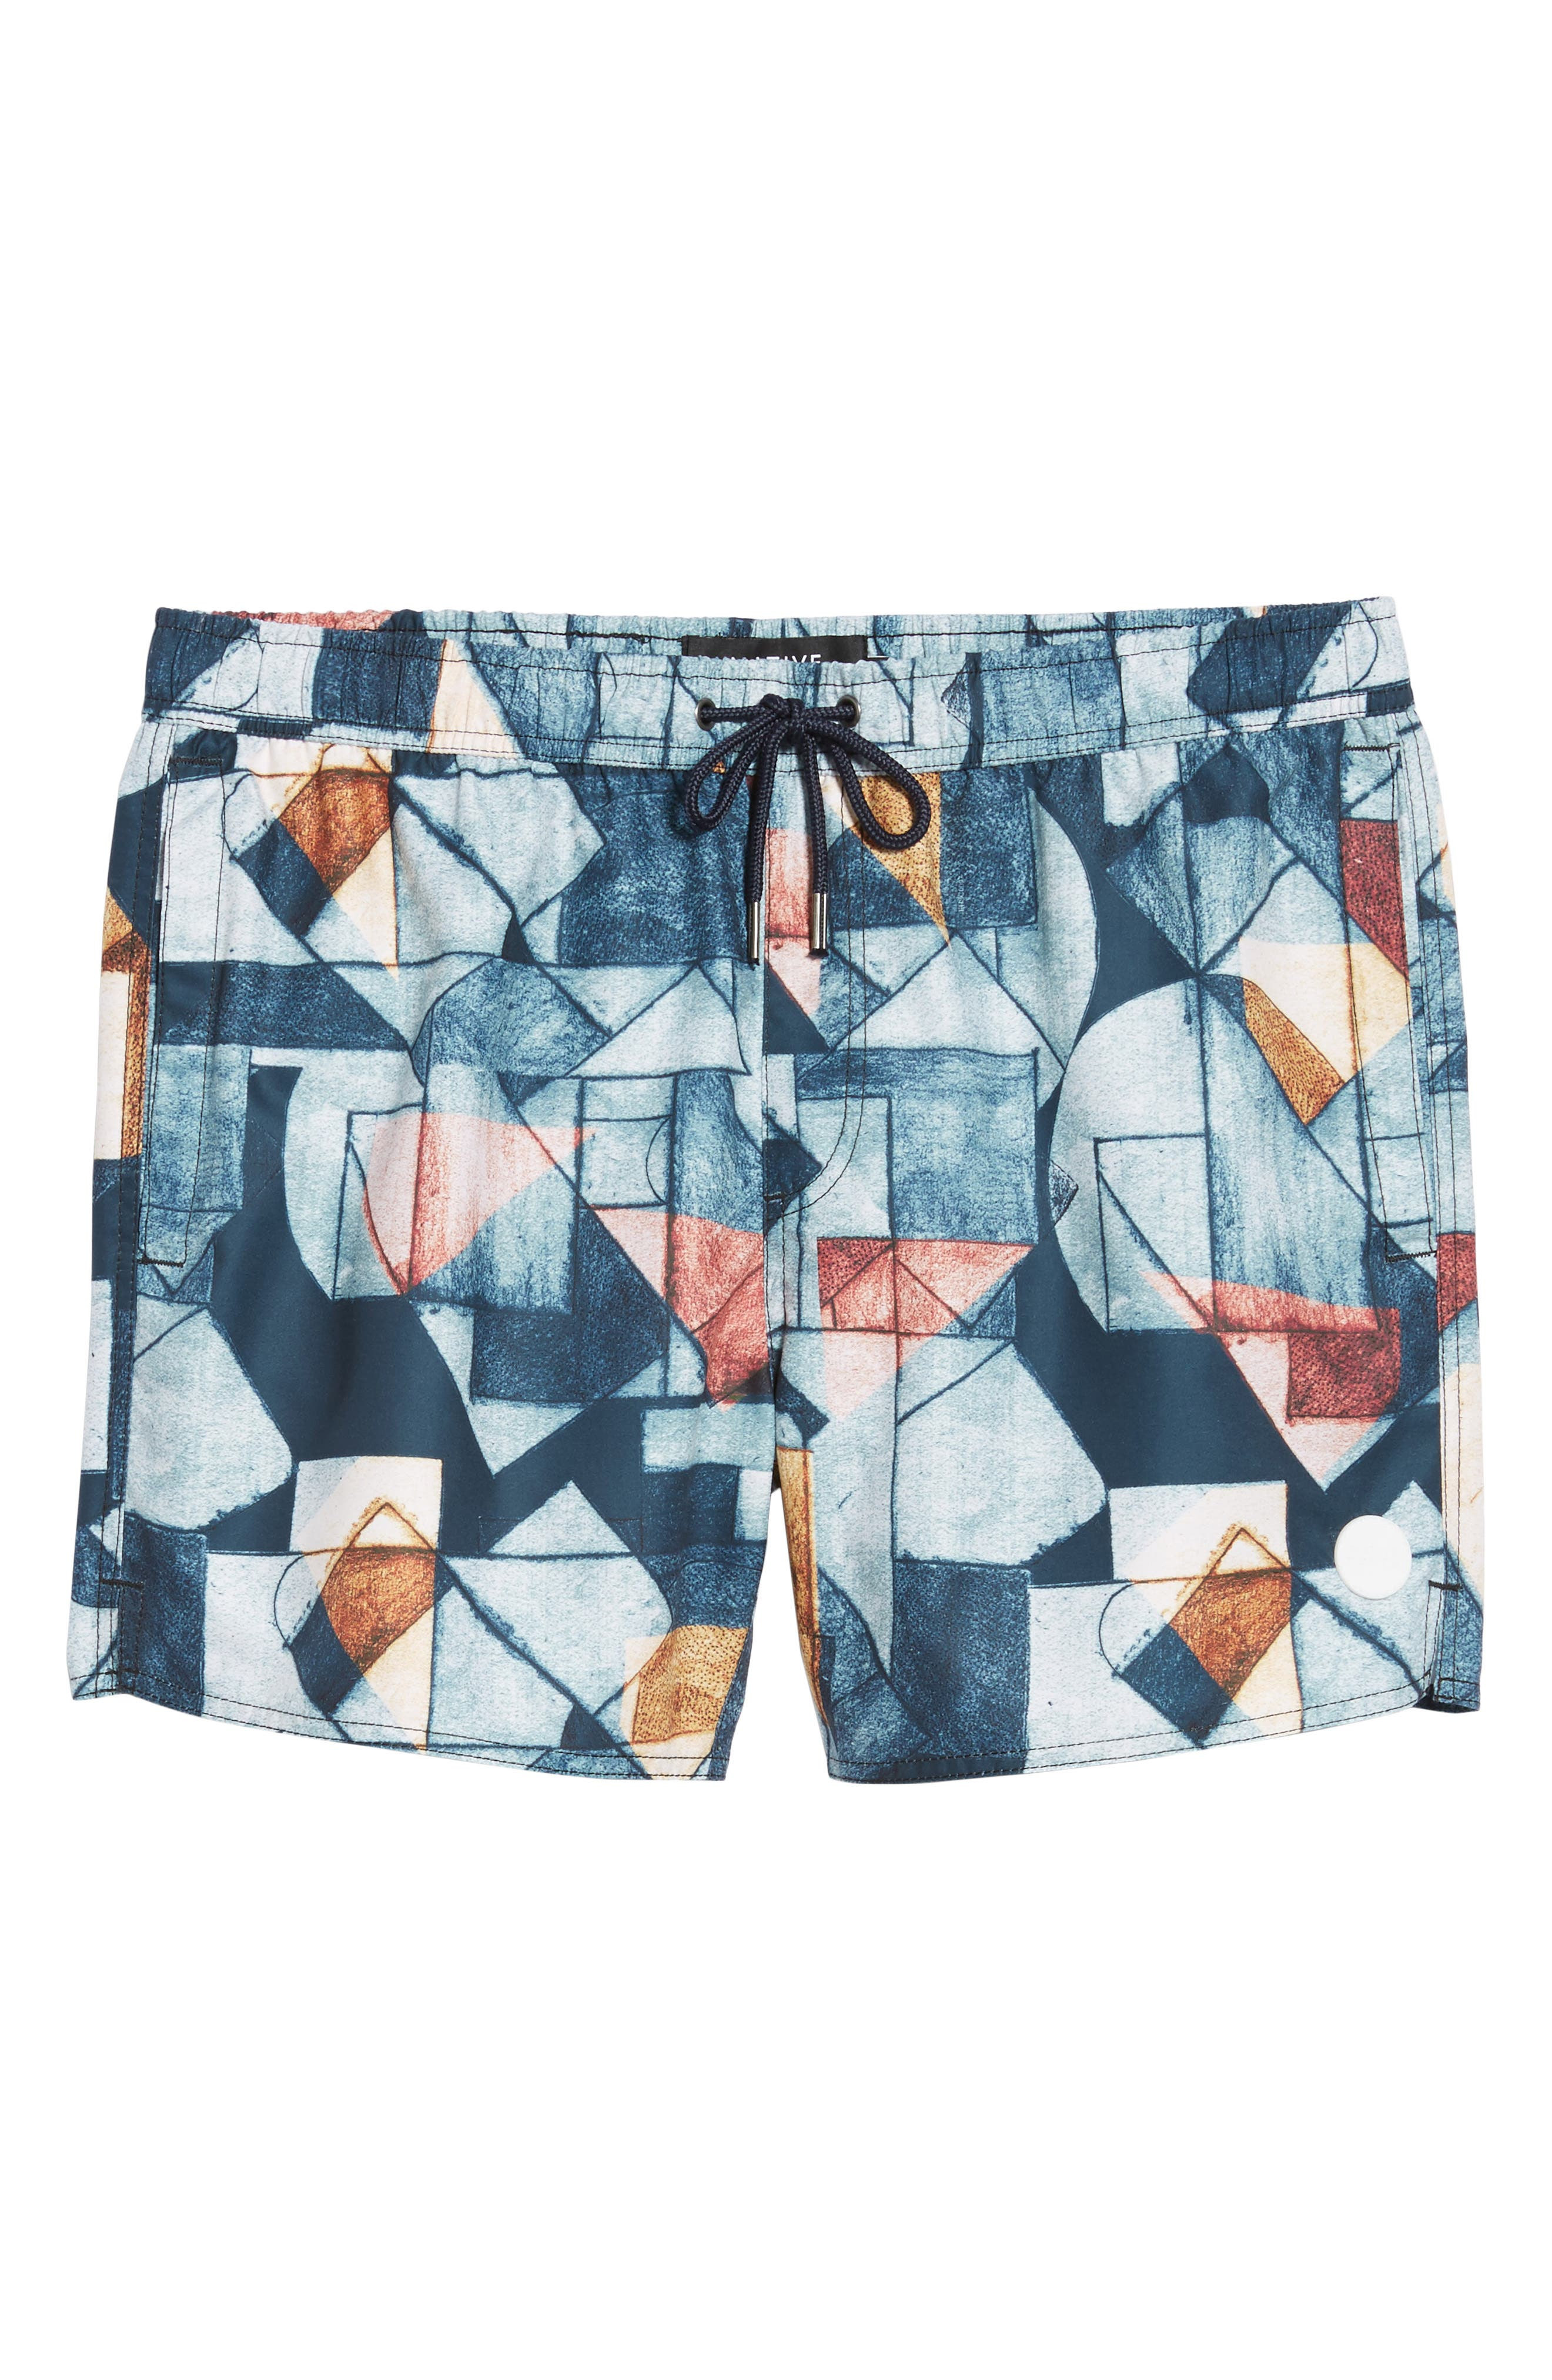 NATIVE YOUTH,                             Olio Etch Swim Trunks,                             Alternate thumbnail 6, color,                             400